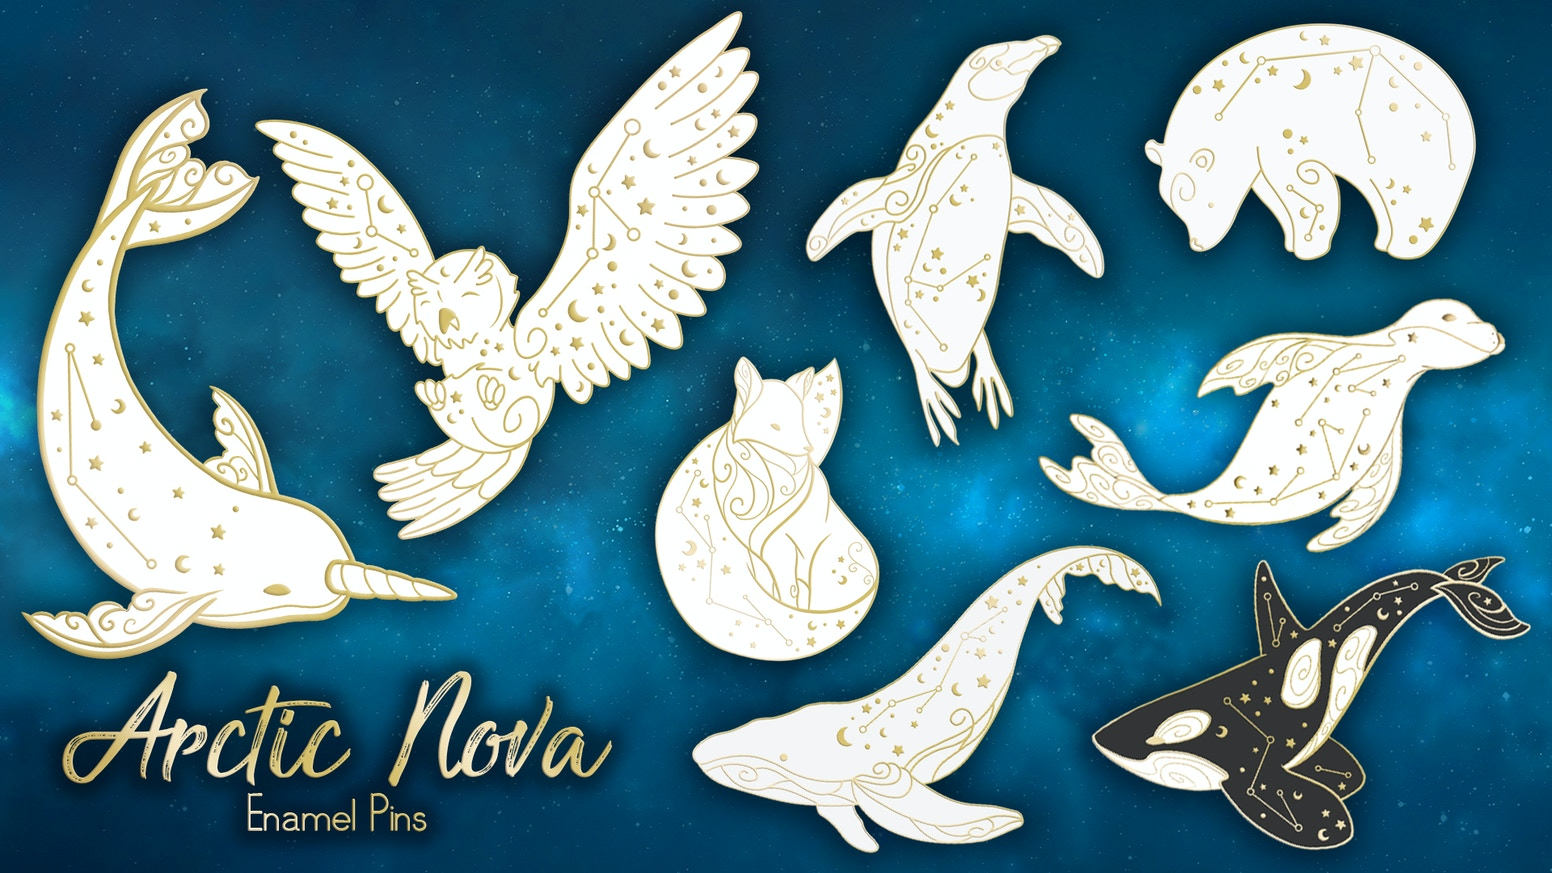 A pin collection inspired by nebulae, constellations and the snowy animals of the arctic!